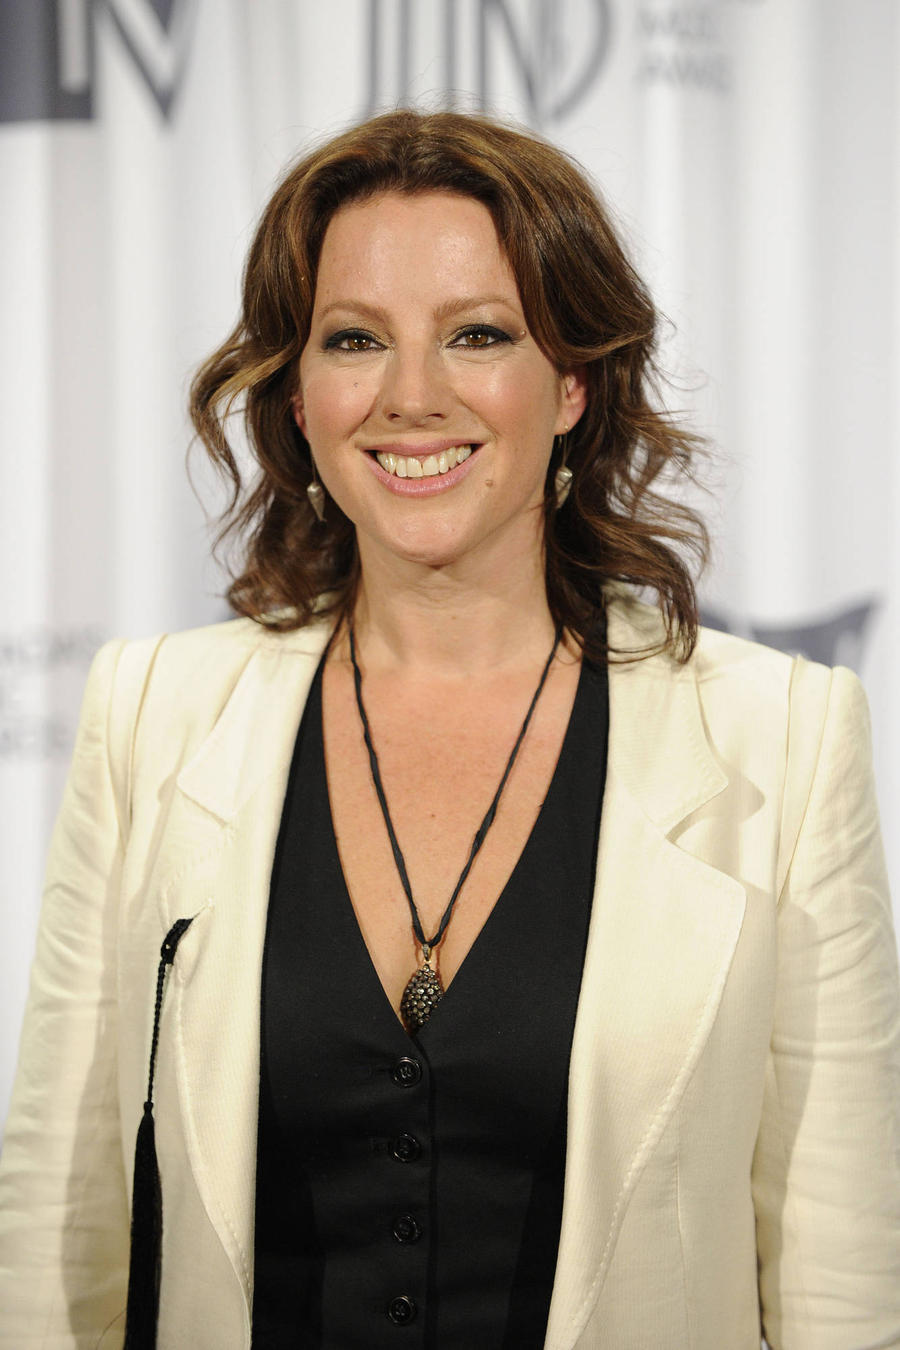 Sarah Mclachlan Opens Her House To 'Stragglers' On Christmas Eve